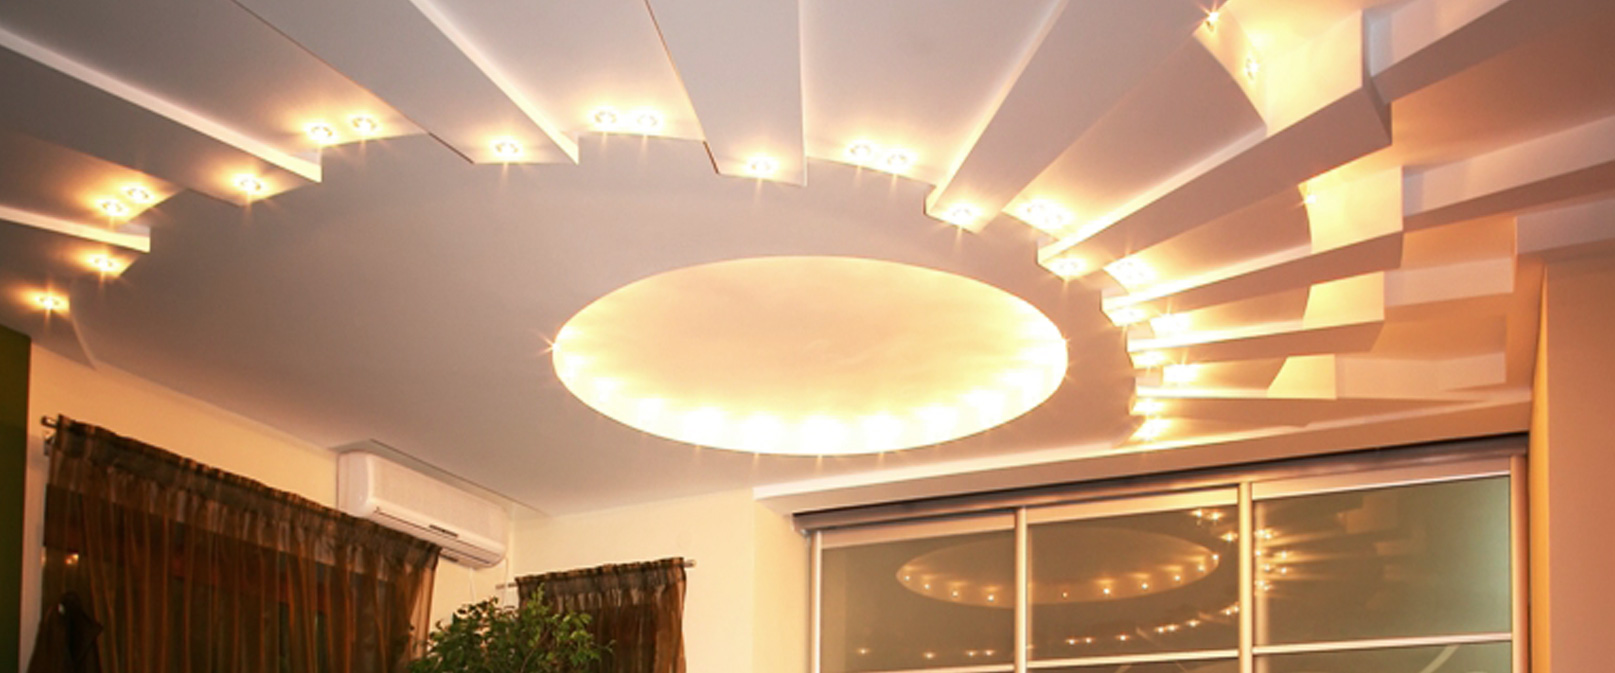 Lighting up the ceiling saint gobain gyproc india lighting up the ceiling mozeypictures Images